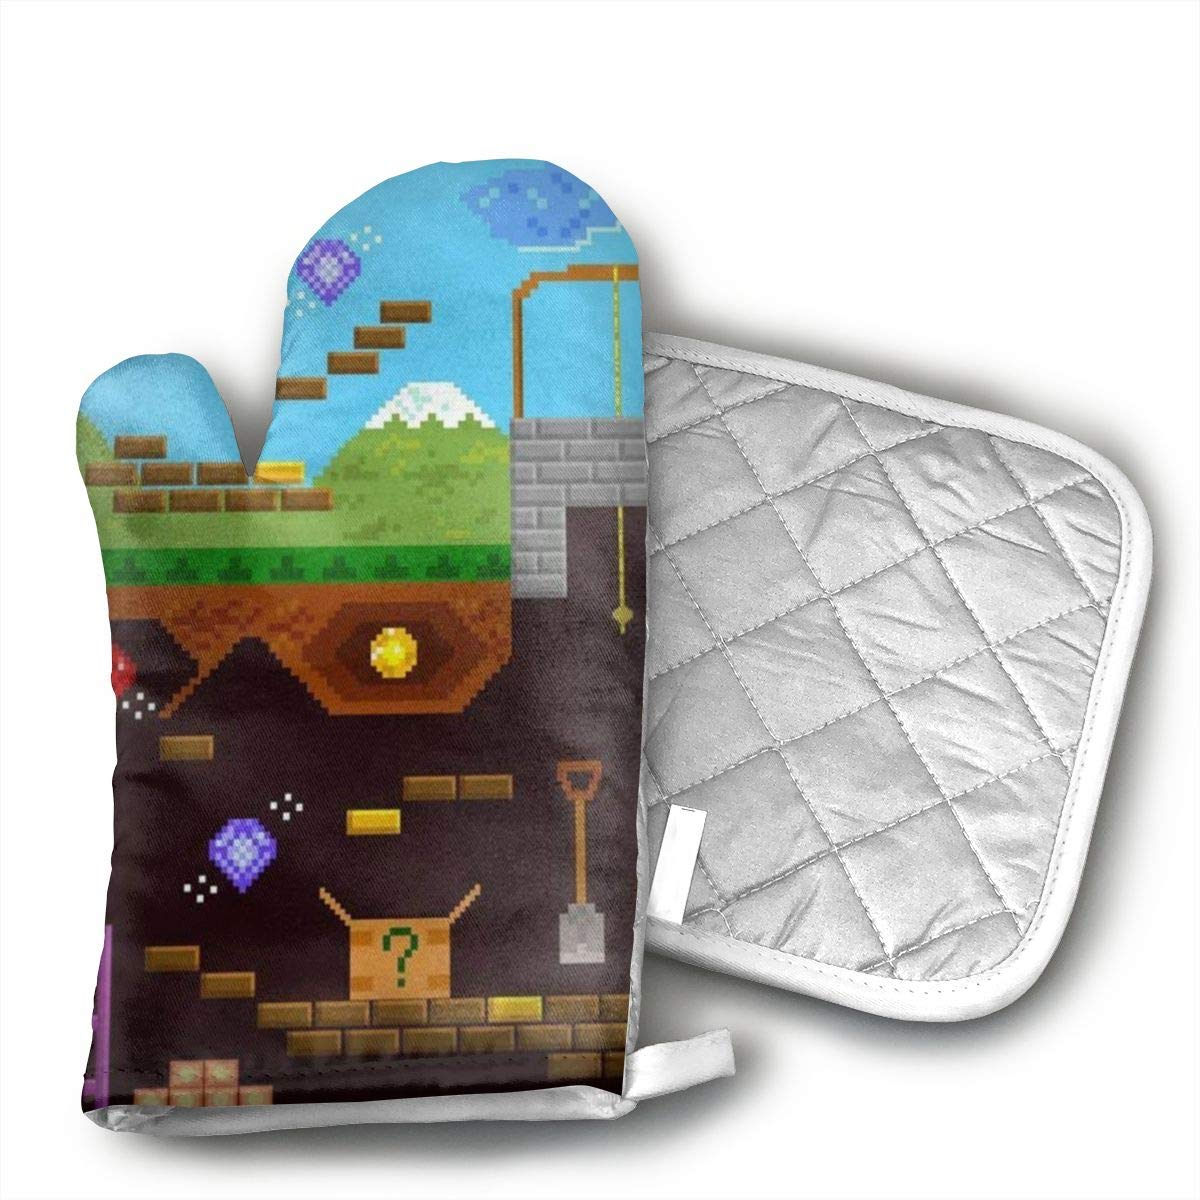 GRSTsys Retro Video Game Oven Mitts - Professional Heat Resistant Mitt, Baking, Grilling, Broiling.